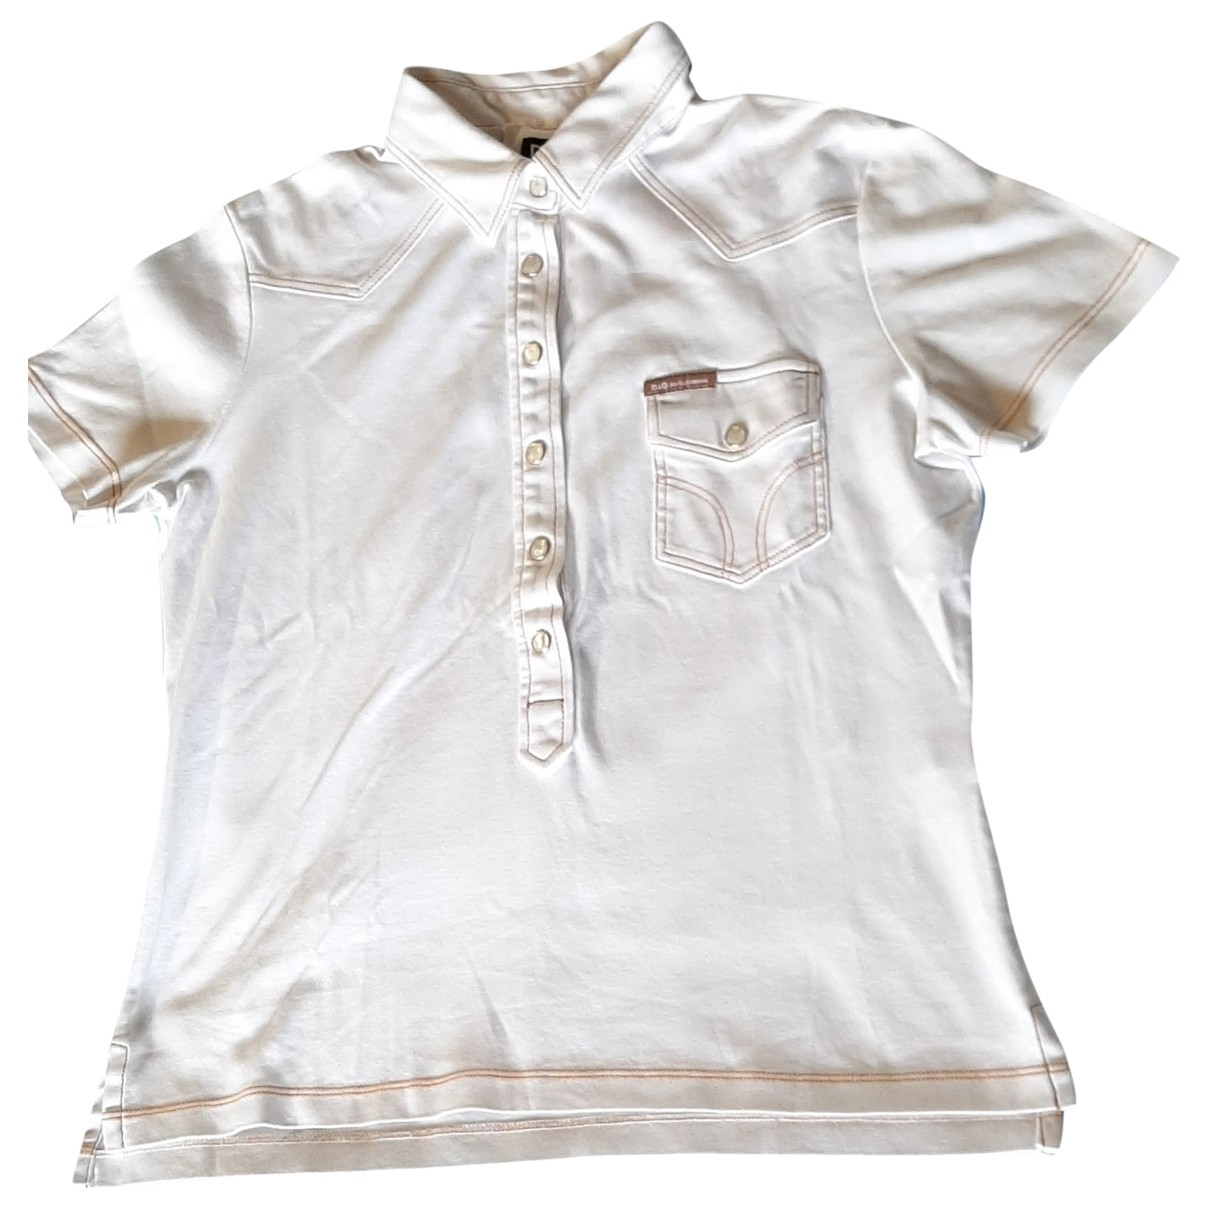 D&g \N White Cotton  top for Women 46 IT